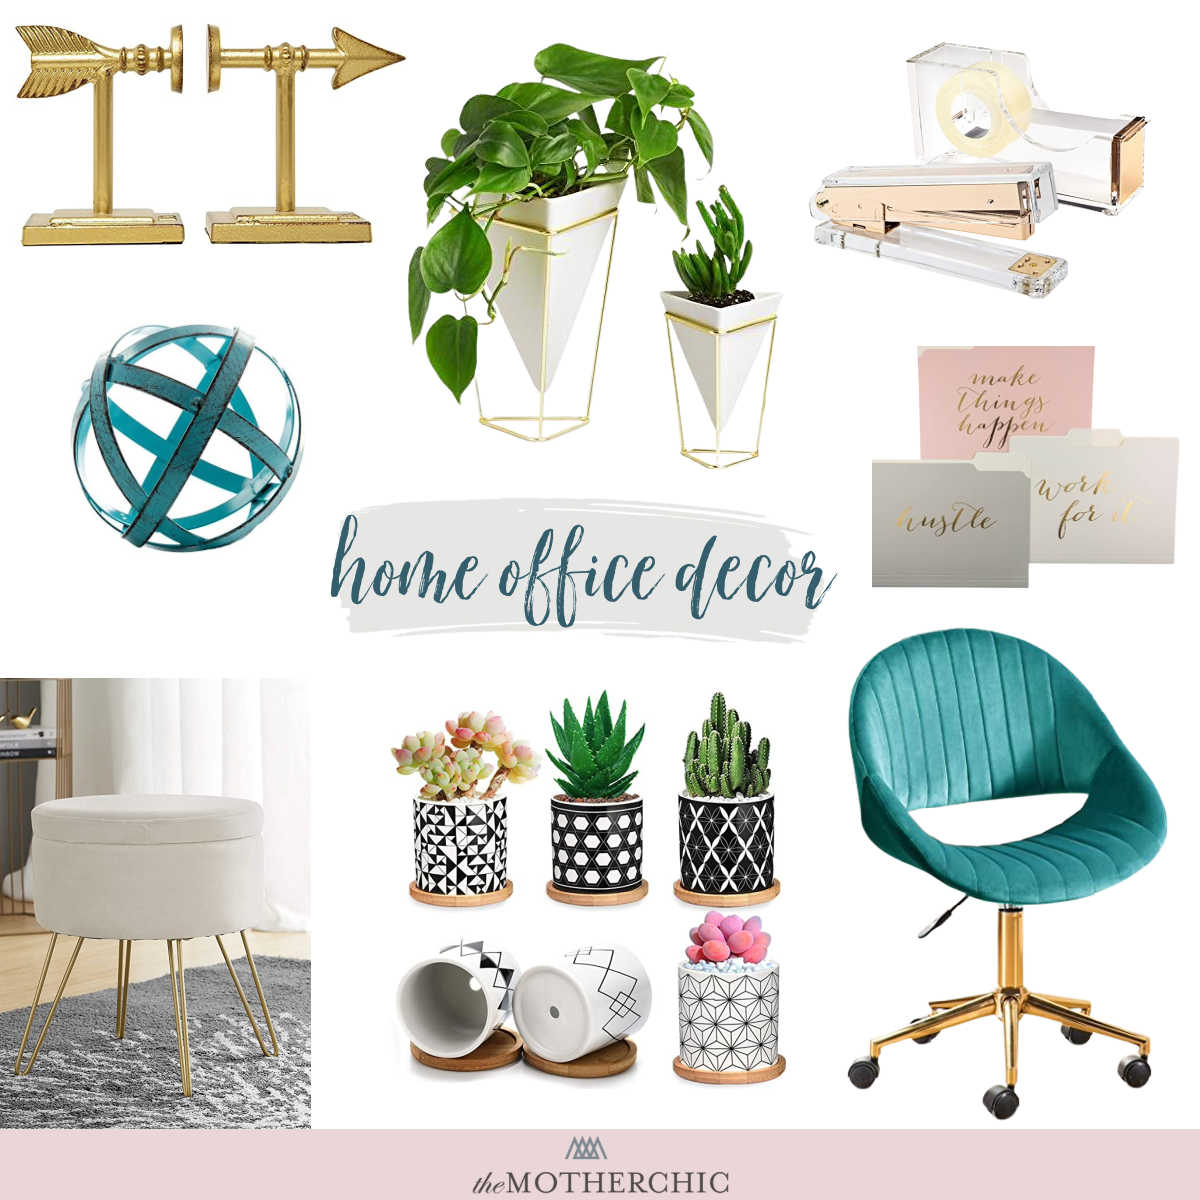 the motherchic amazon home office decor